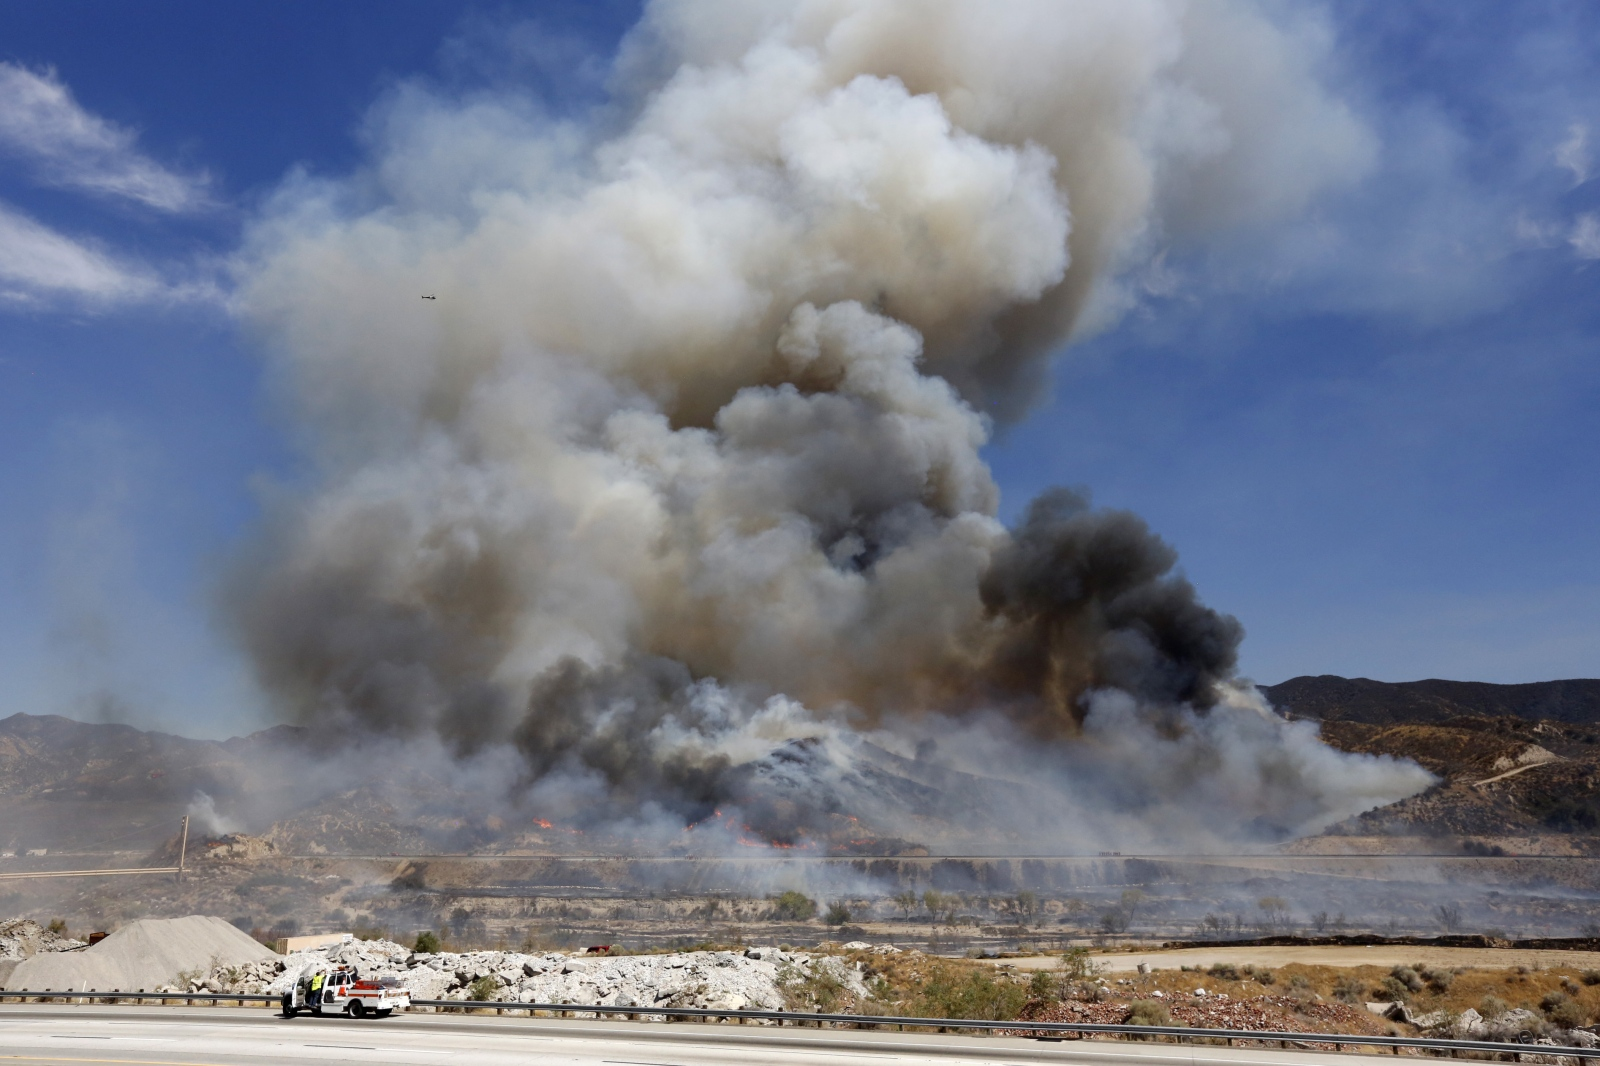 The Sand Fire explodes out of control of fire crews shortly after it started around 2 p.m. on Friday, July 22, 2016. It started around five acres, and spread to more than 37,000 acres by Tuesday. Katharine Lotze/The Signal